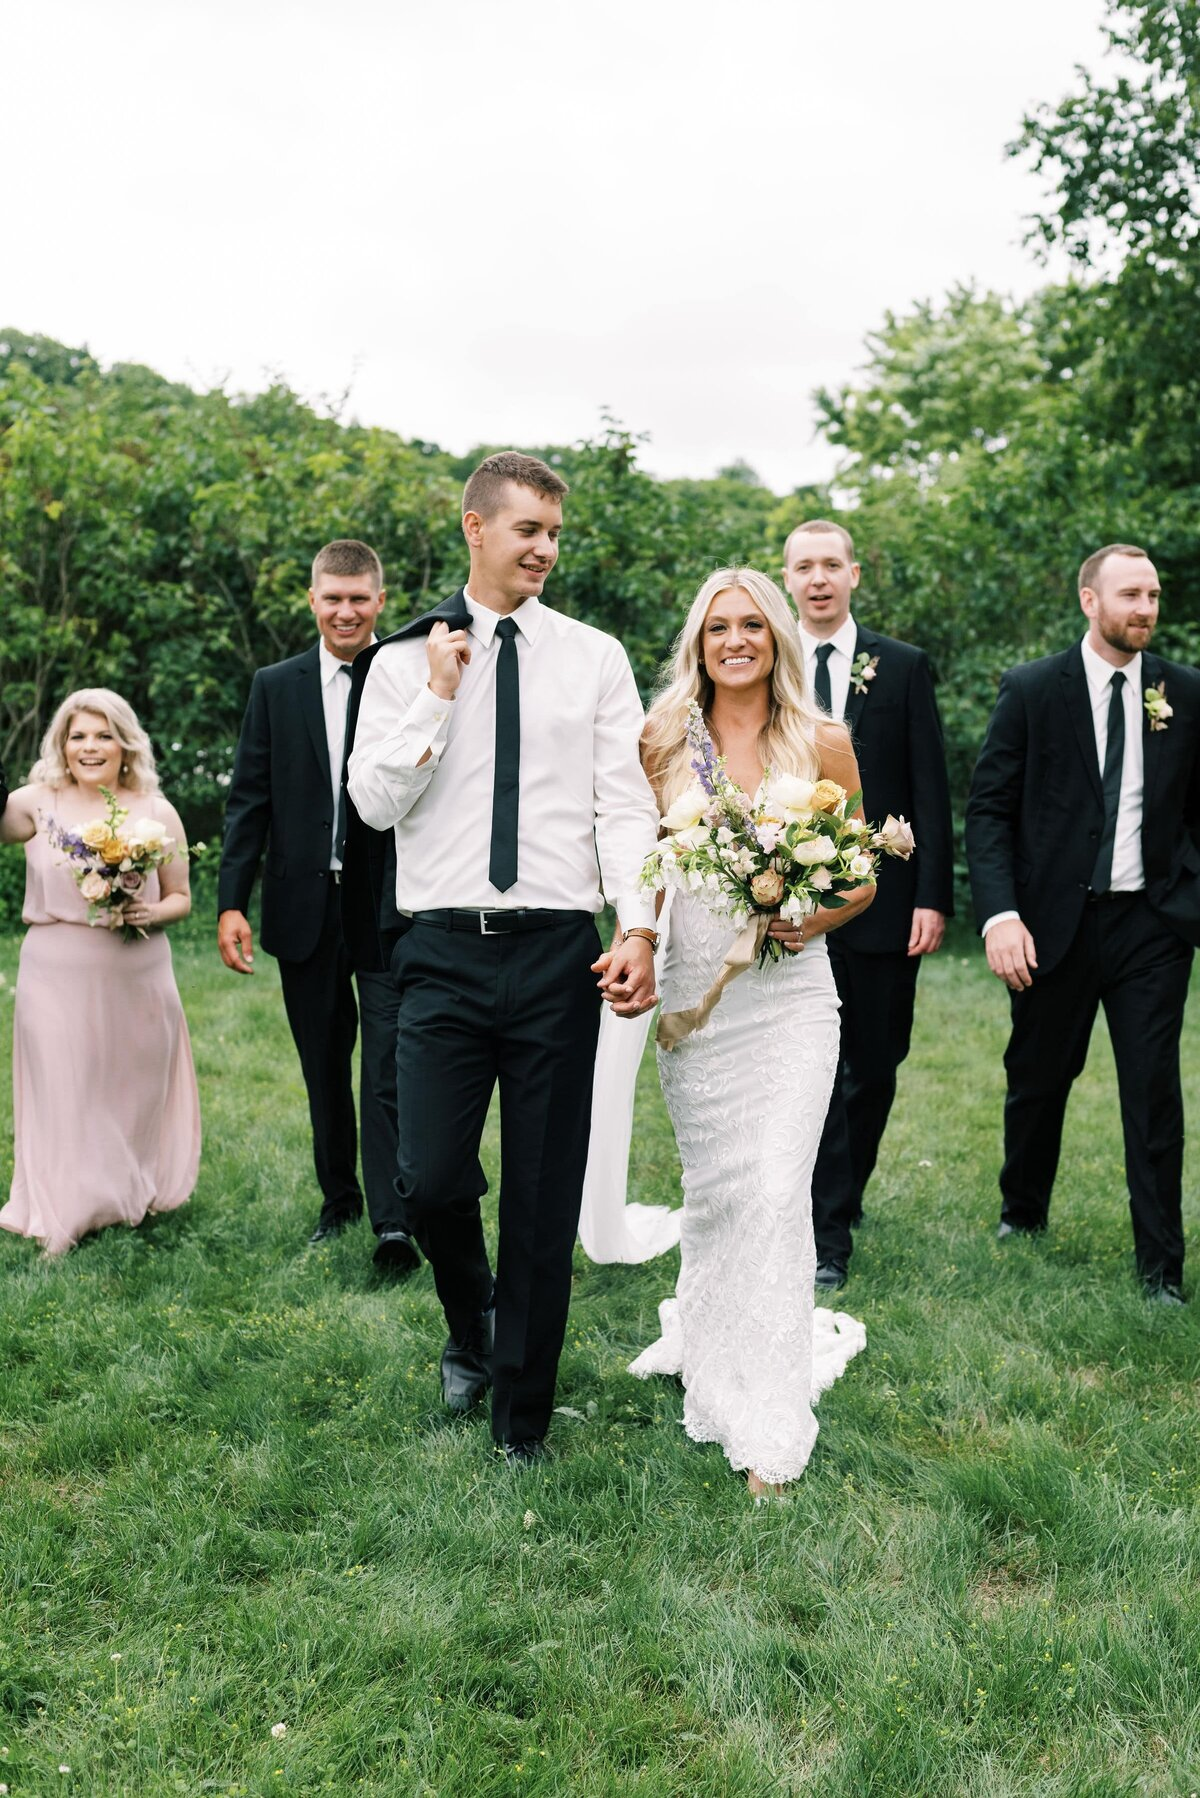 The Day's Design Traverse City Florist Blush Wedding Ideas-min